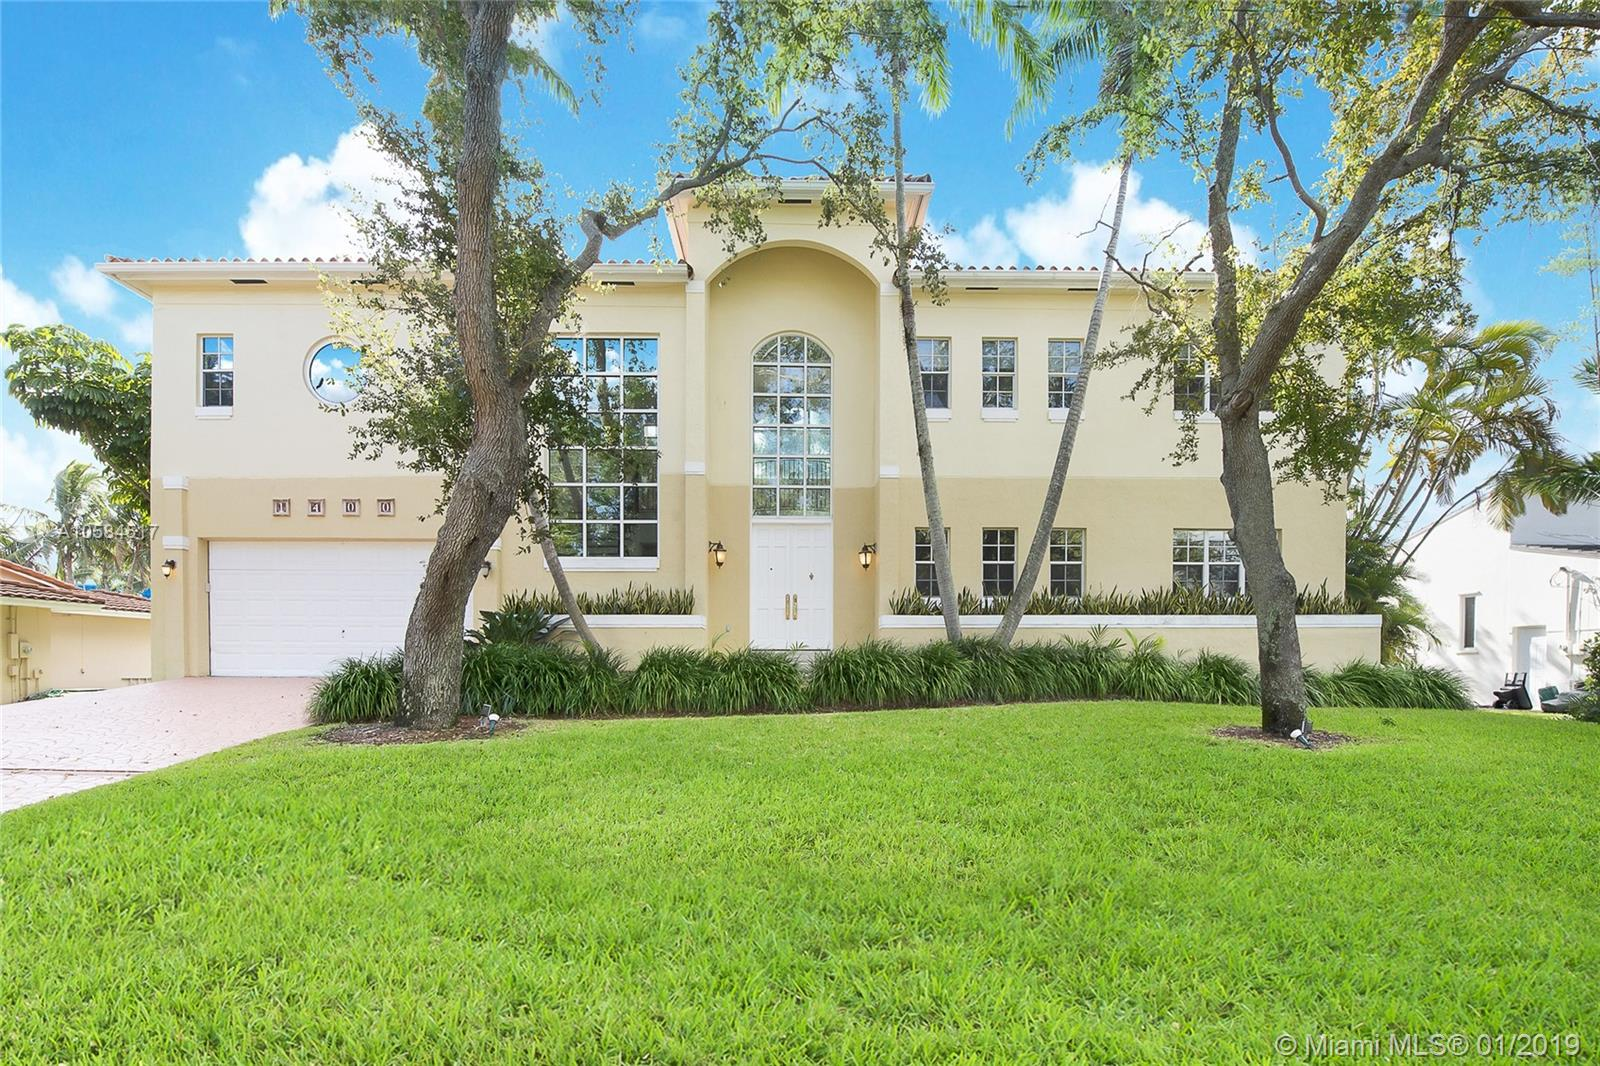 Located In Guard-Gated Gables By The Sea On A Cul-De-Sac Street With A Park, And Walking Distance To The Best Public And Private Schools. Fantastic Curb Appeal. Wonderful Neighborhood Streets Perfect For Kids And Families Walking. Great Room With A Gas Fireplace And French Doors Out To A Large Patio, Pool, Wood Deck And Canal. Inviting Family Kitchen With Double Ovens, Gas Range, And Breakfast Area. All Bedrooms Are Private With Ensuite Baths And A Large Terrace Overlooking The Water Views. A Must See!